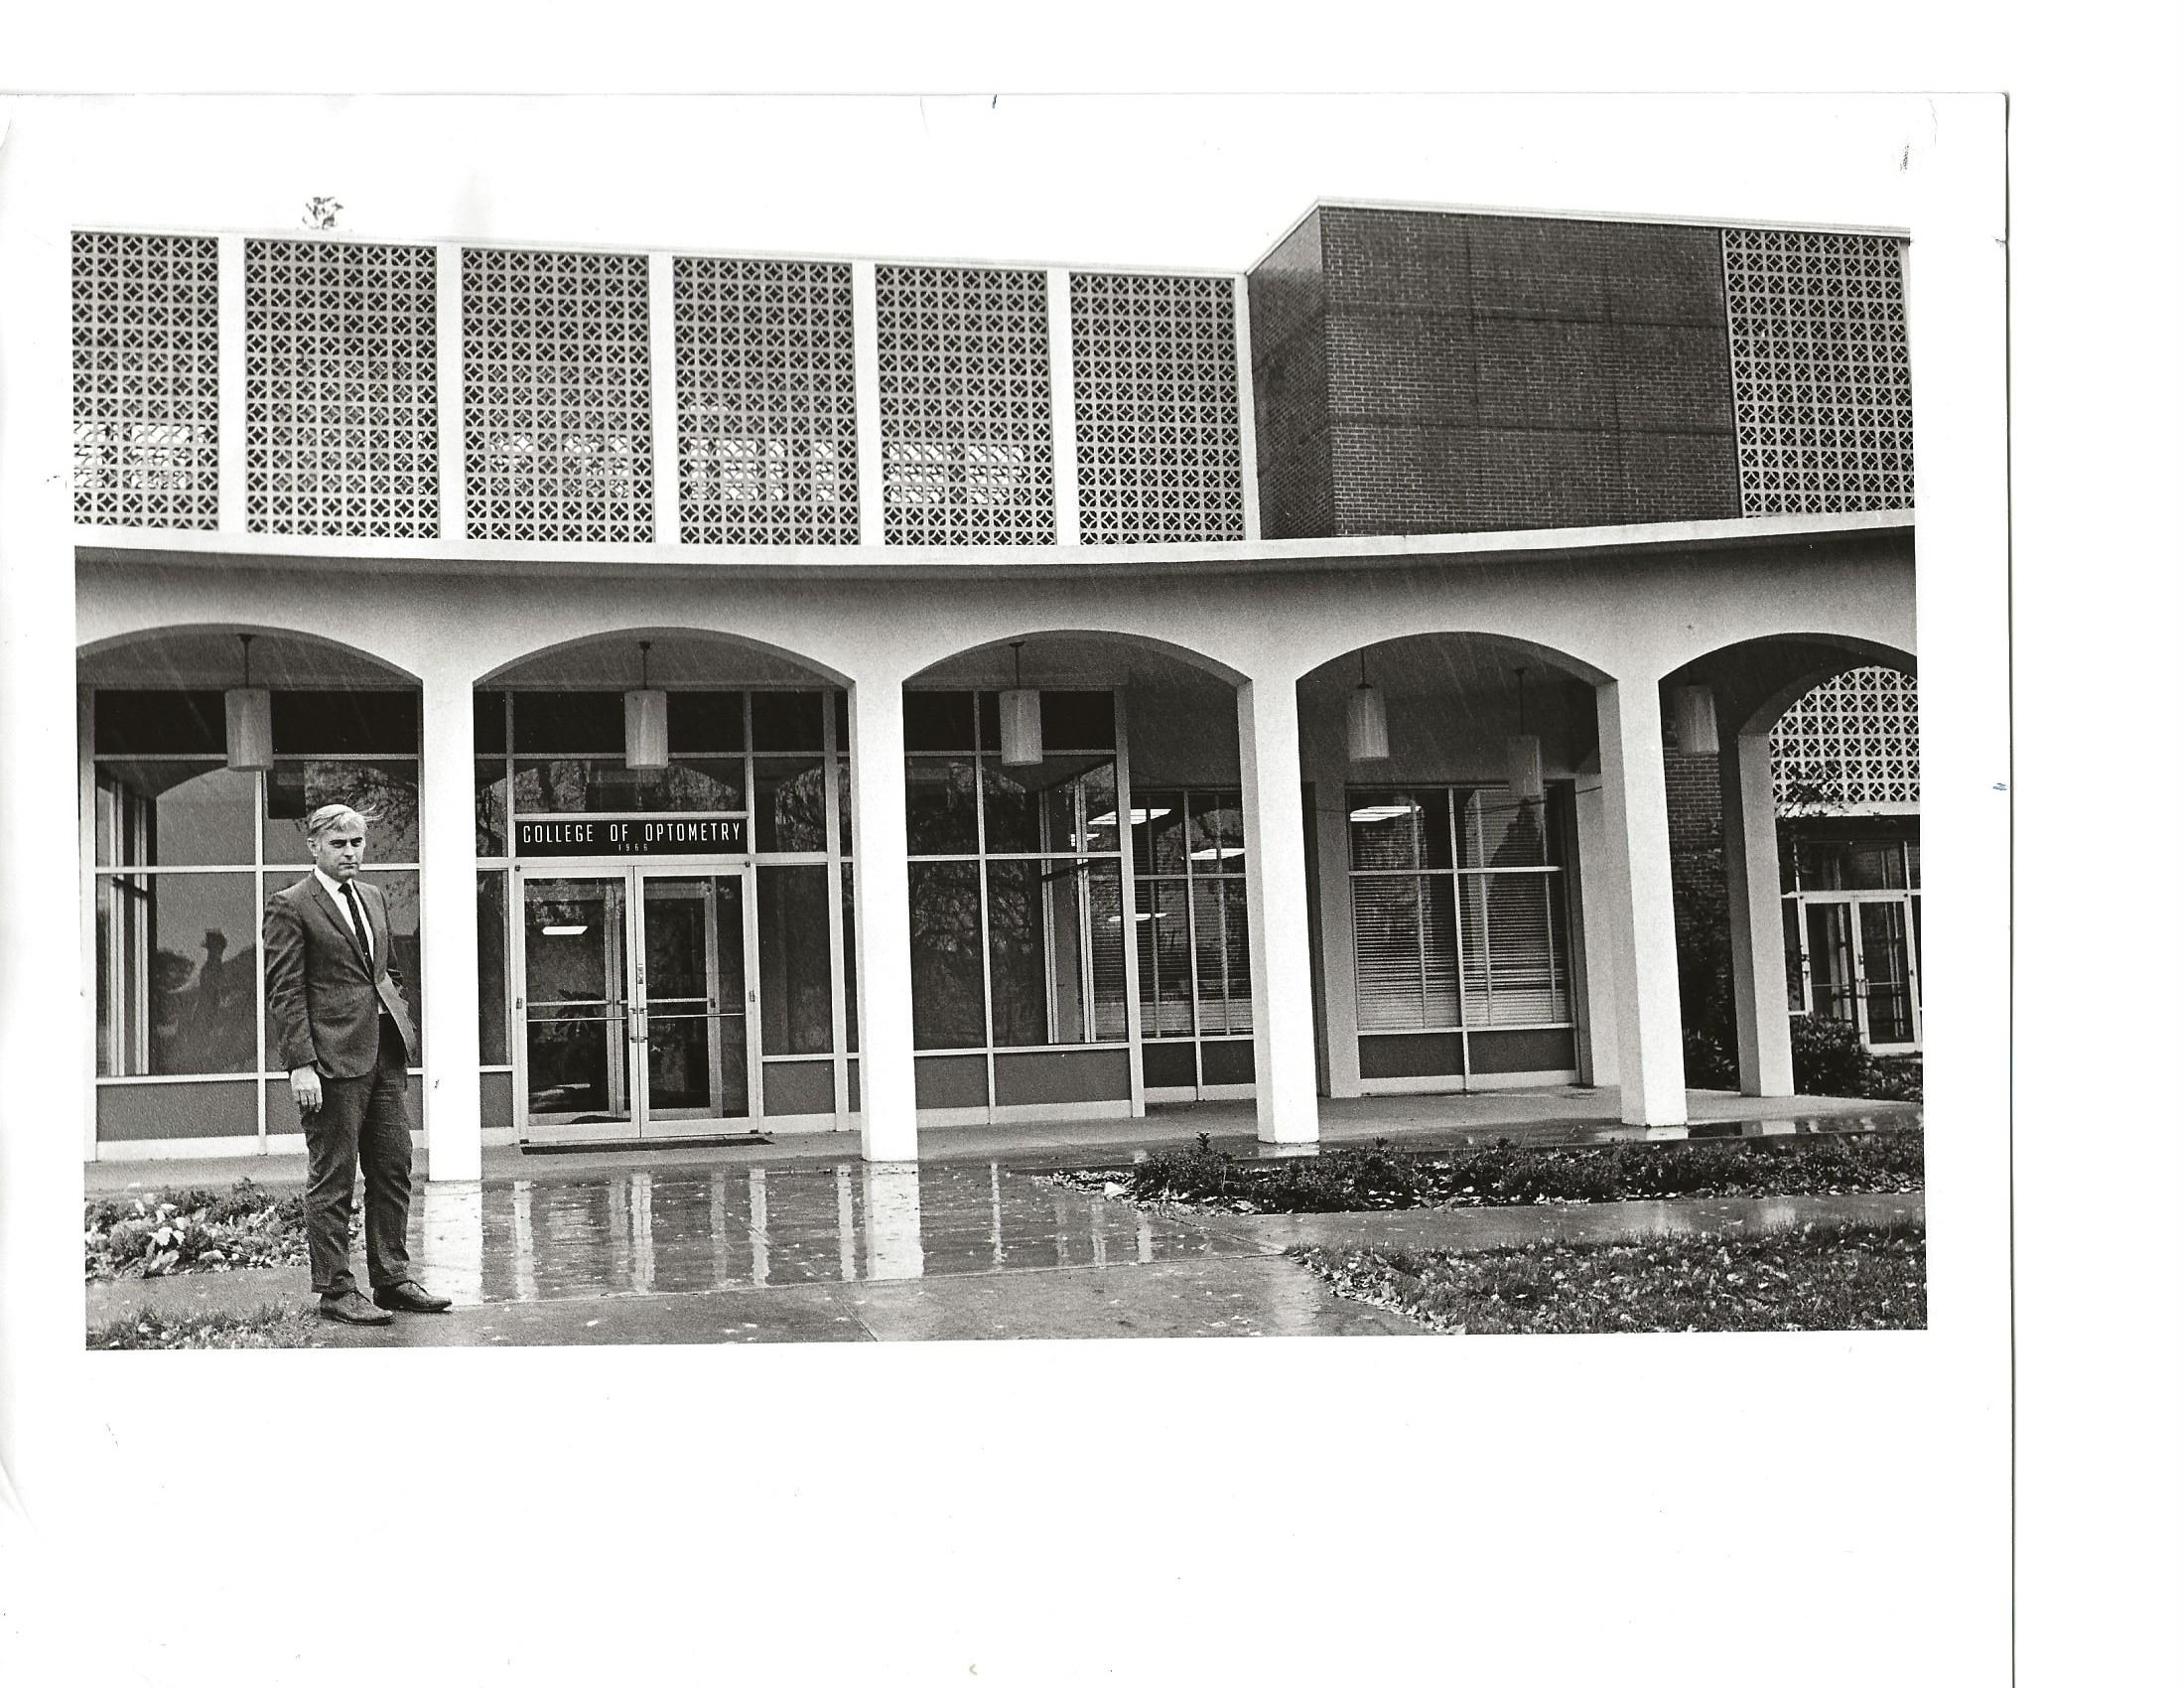 Bradford W. Wild, OD, standing in front of Jefferson Hall, home of the Pacific University College of Optometry, in 1970.